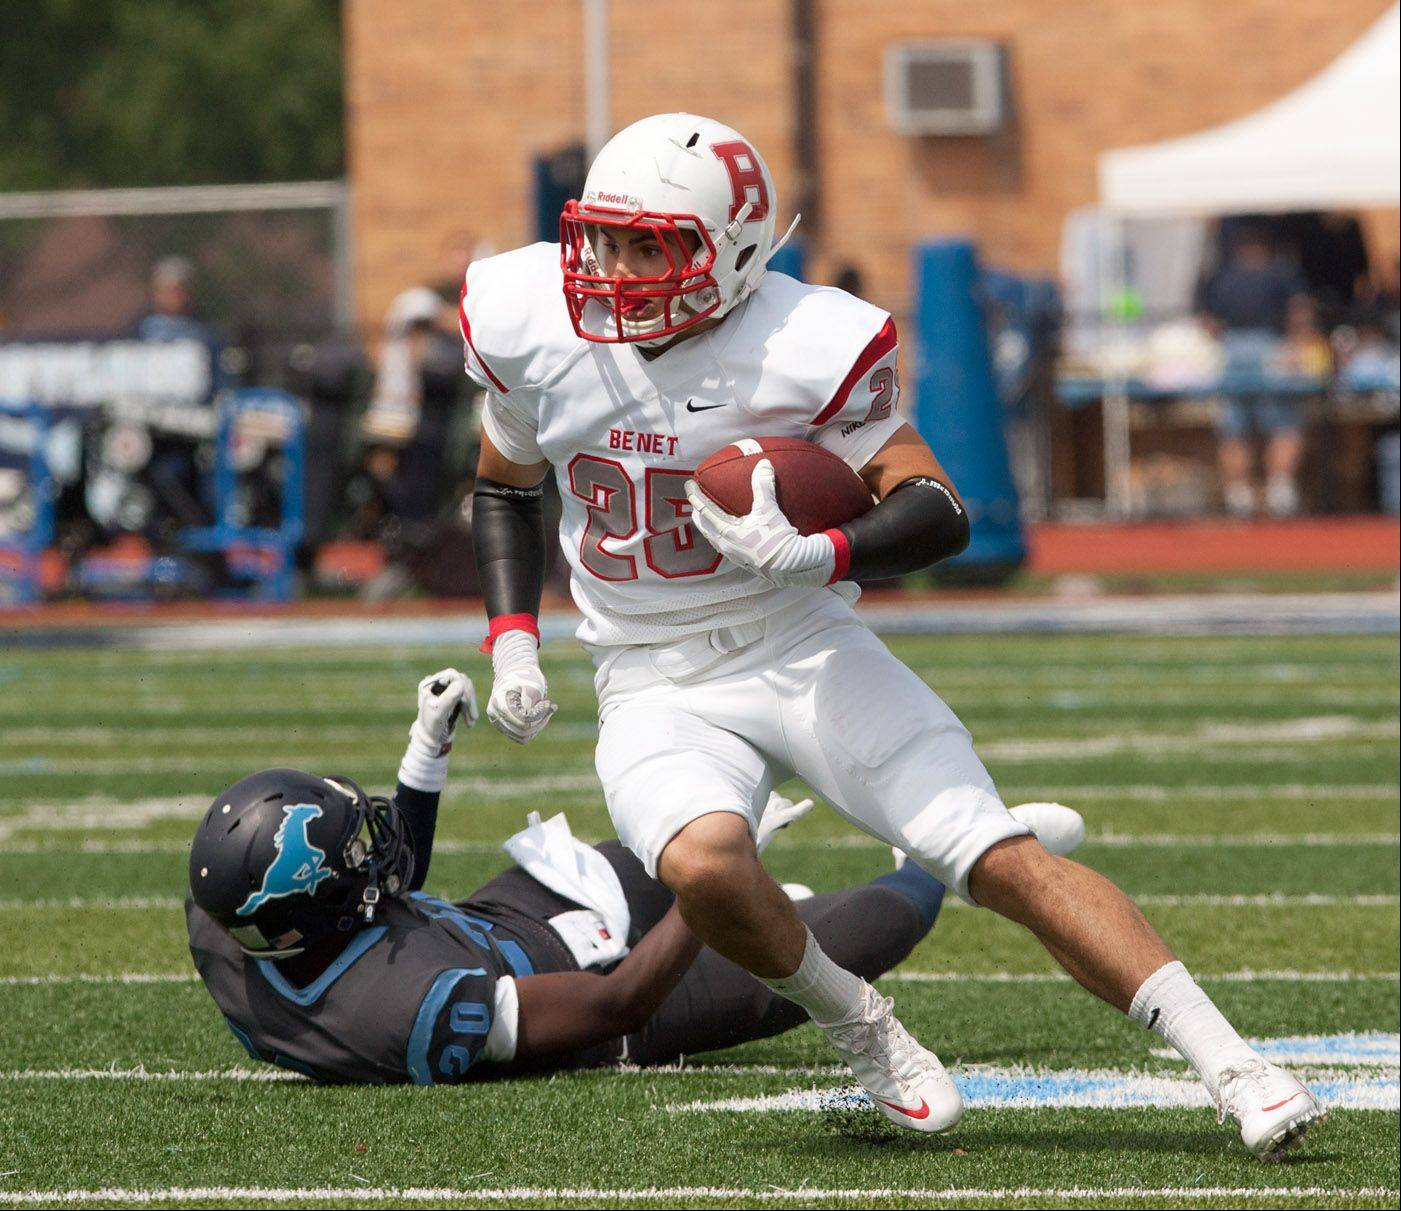 Images: Benet Academy vs. Downers Grove South football